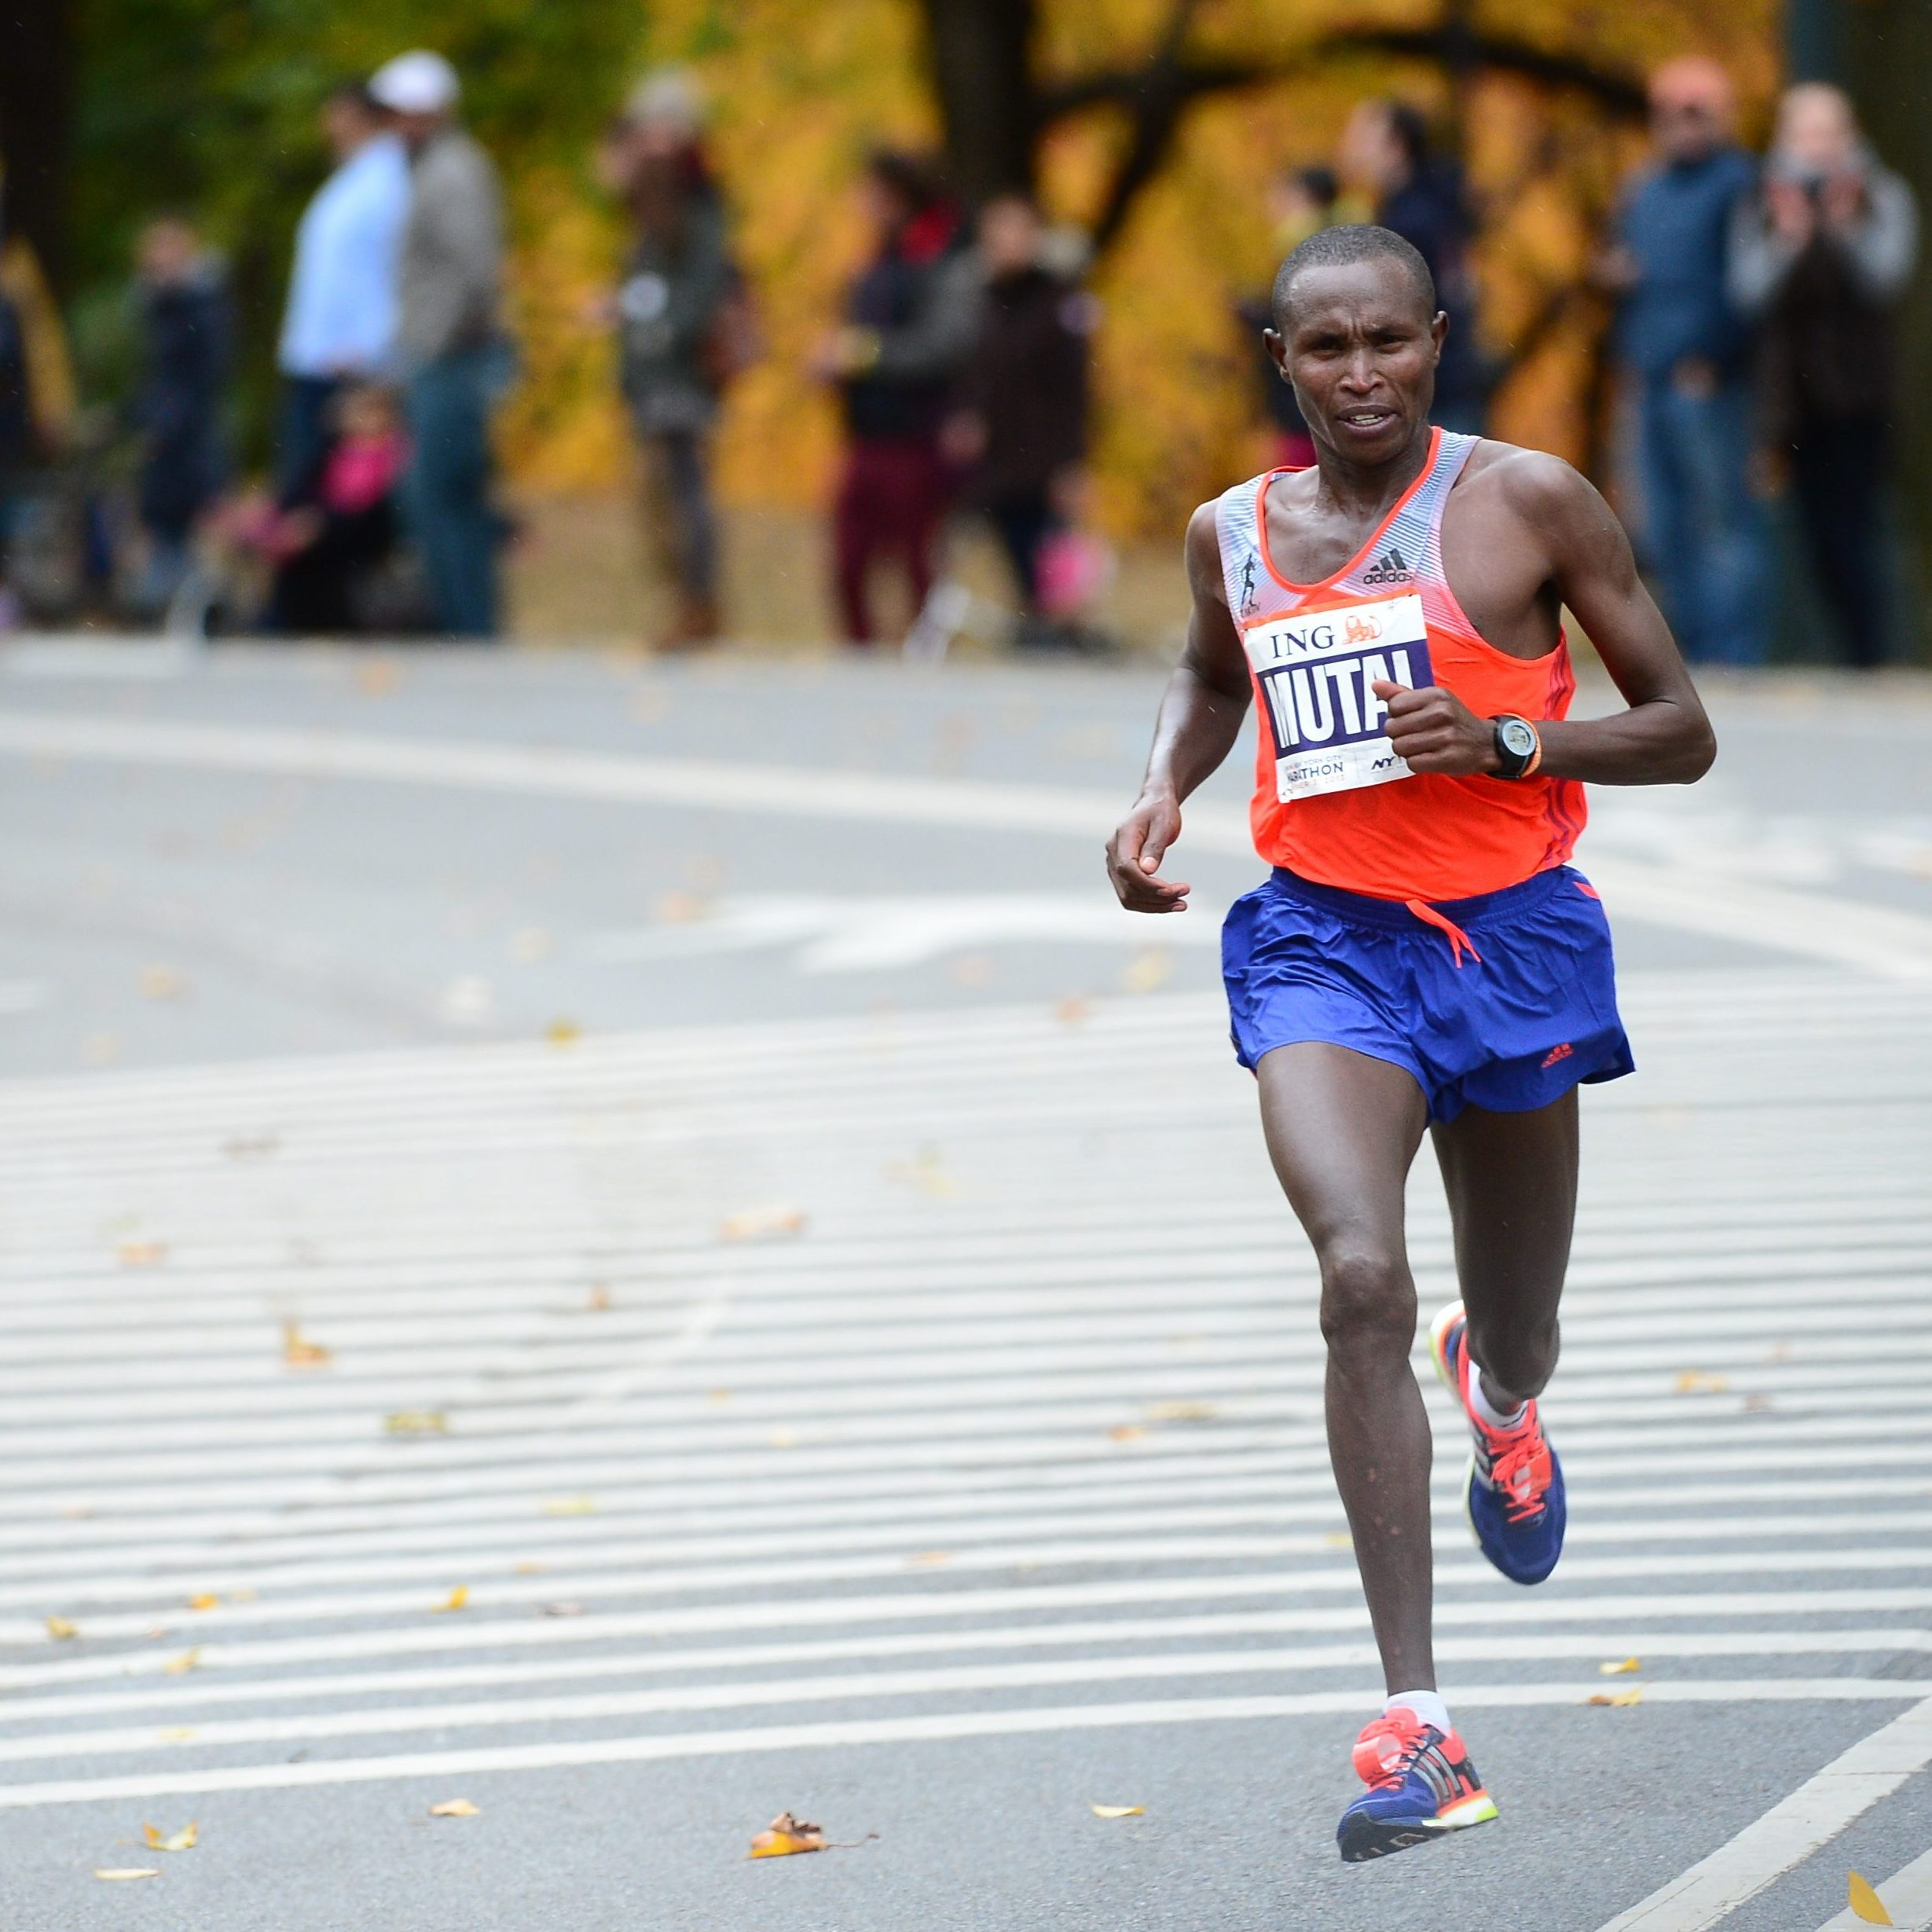 Geoffrey Mutai of Kenya leads the New York City Marathon on Sunday.